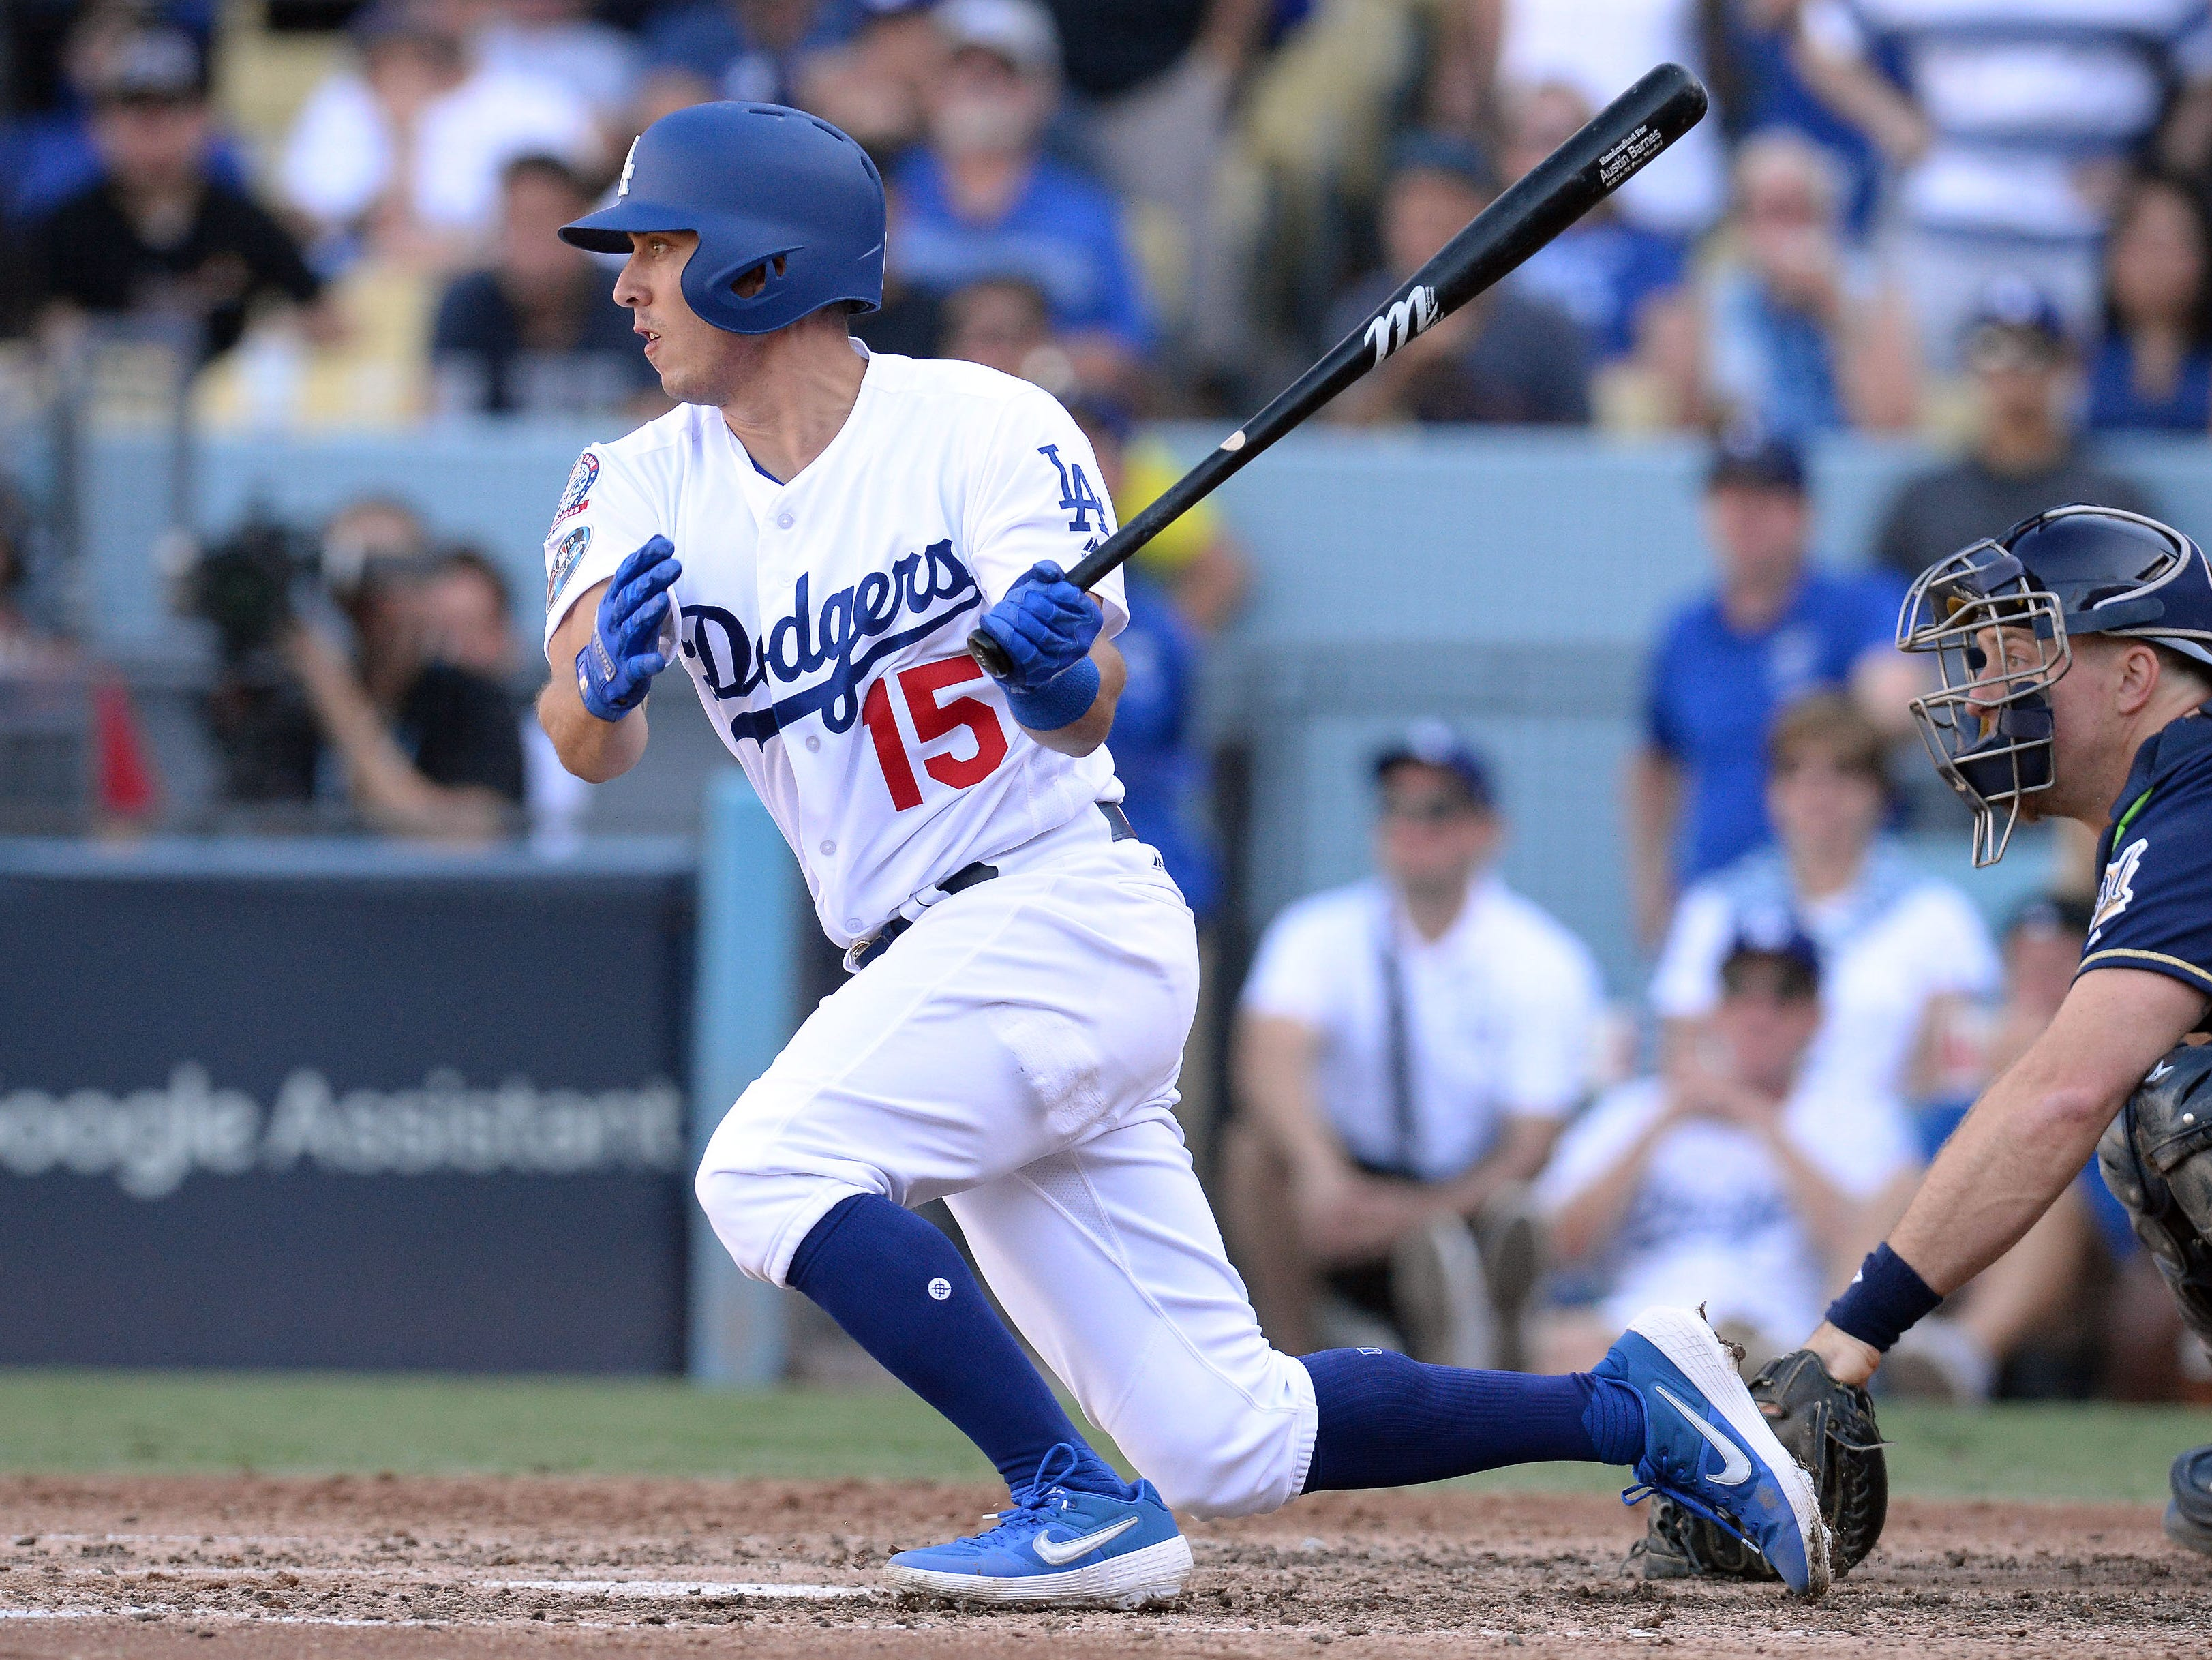 NLCS Game 5: Dodgers catcher Austin barnes hits an RBI single in the fifth inning.